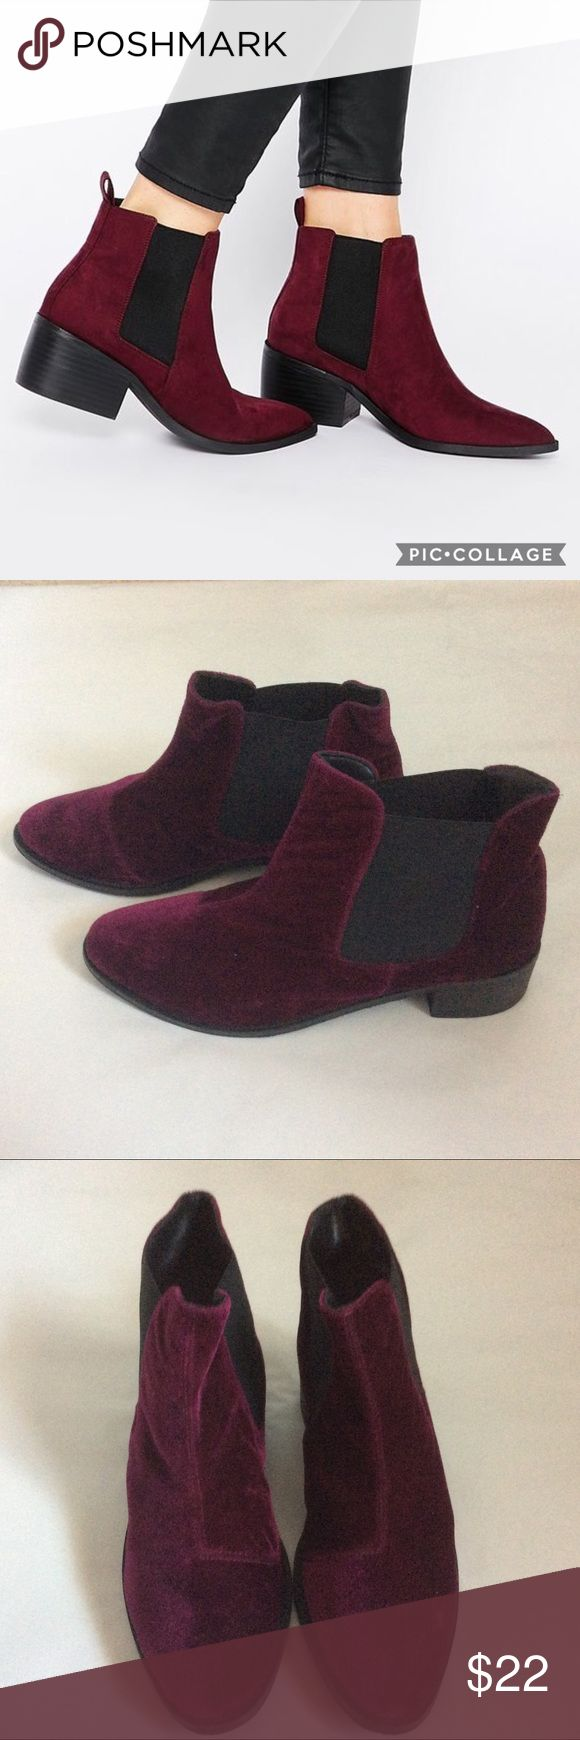 """Maroon Velvet Ankle Boot Maroon velvet ankle boot. GUC. Worn twice and in GUC. Purchased in-house brand from Asos online. I can't quite make out the brand name (see last photo). If you can make out the spelling I'd appreciate if you can tell me what it is, lol. Thanks.😊  1""""Heel. Asos Shoes Heeled Boots"""